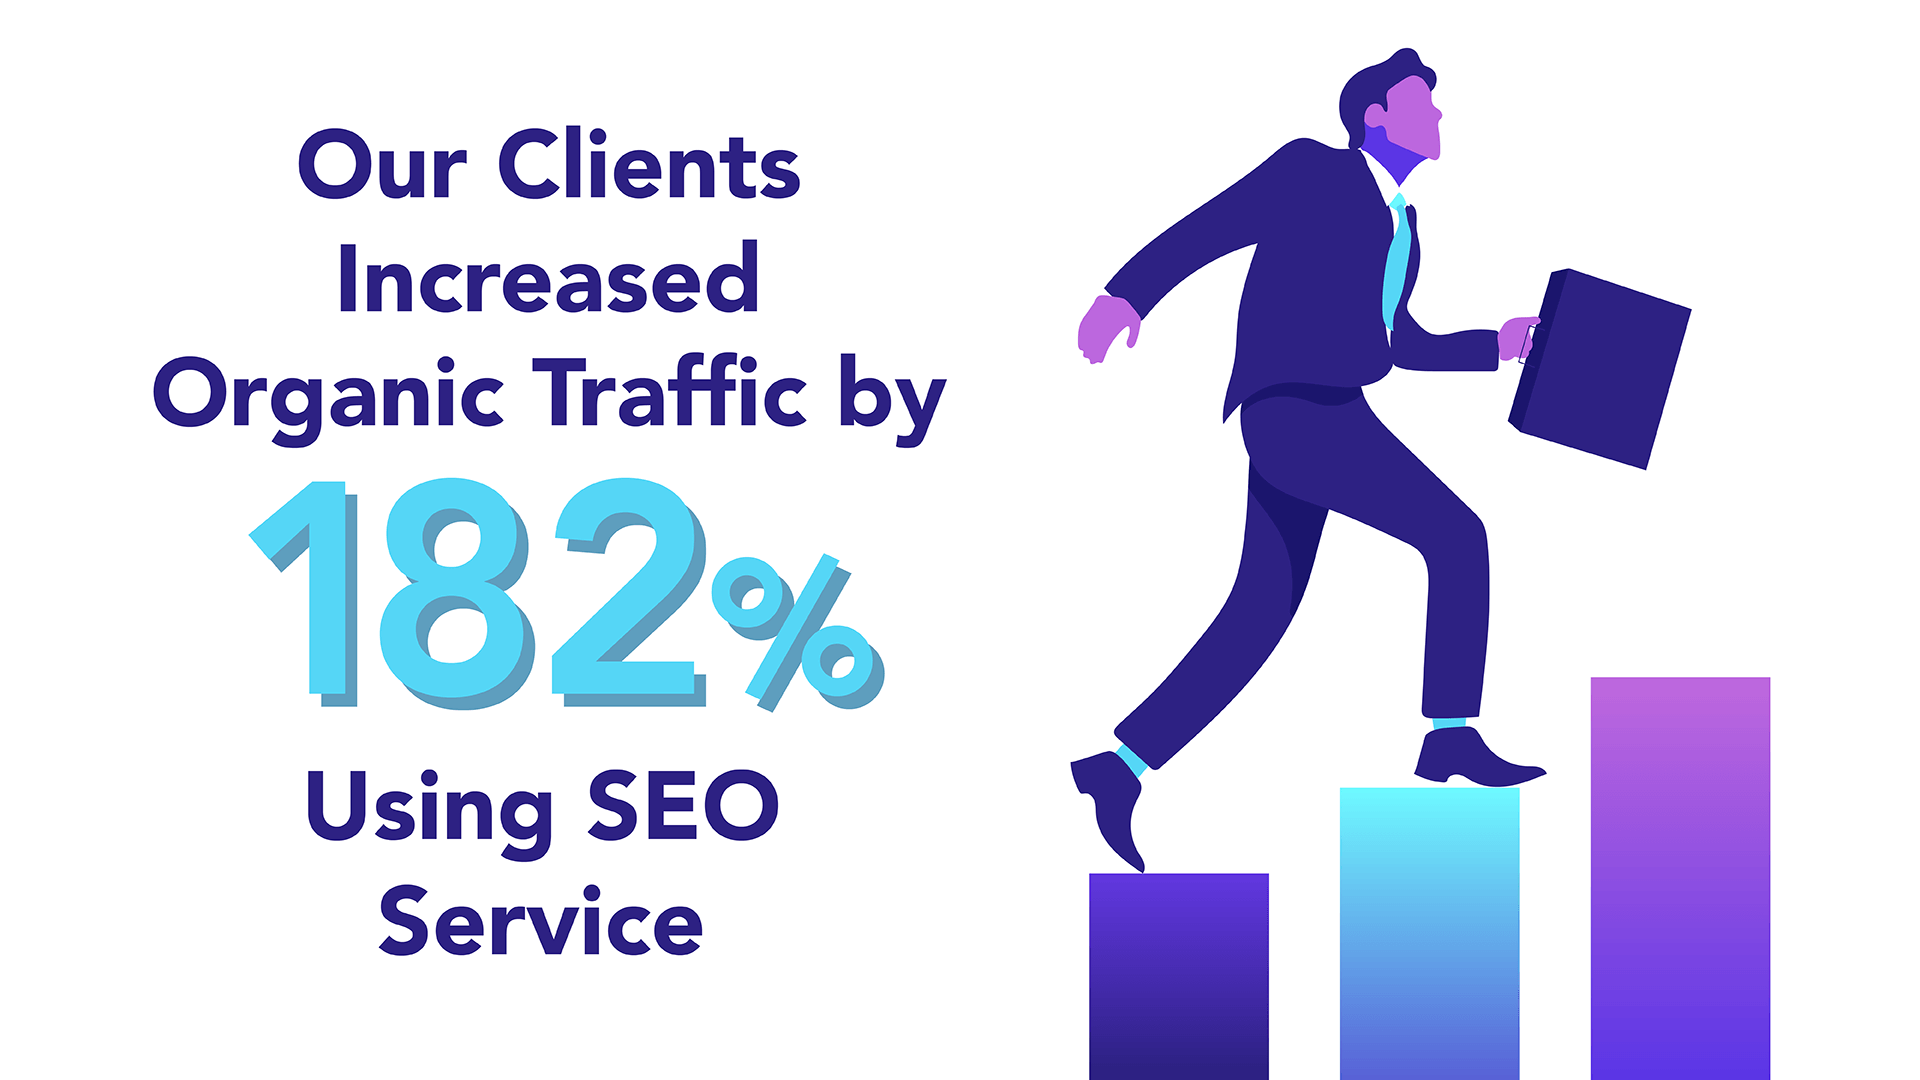 Our Clients Increased Organic Traffic by 182% using SEO Service